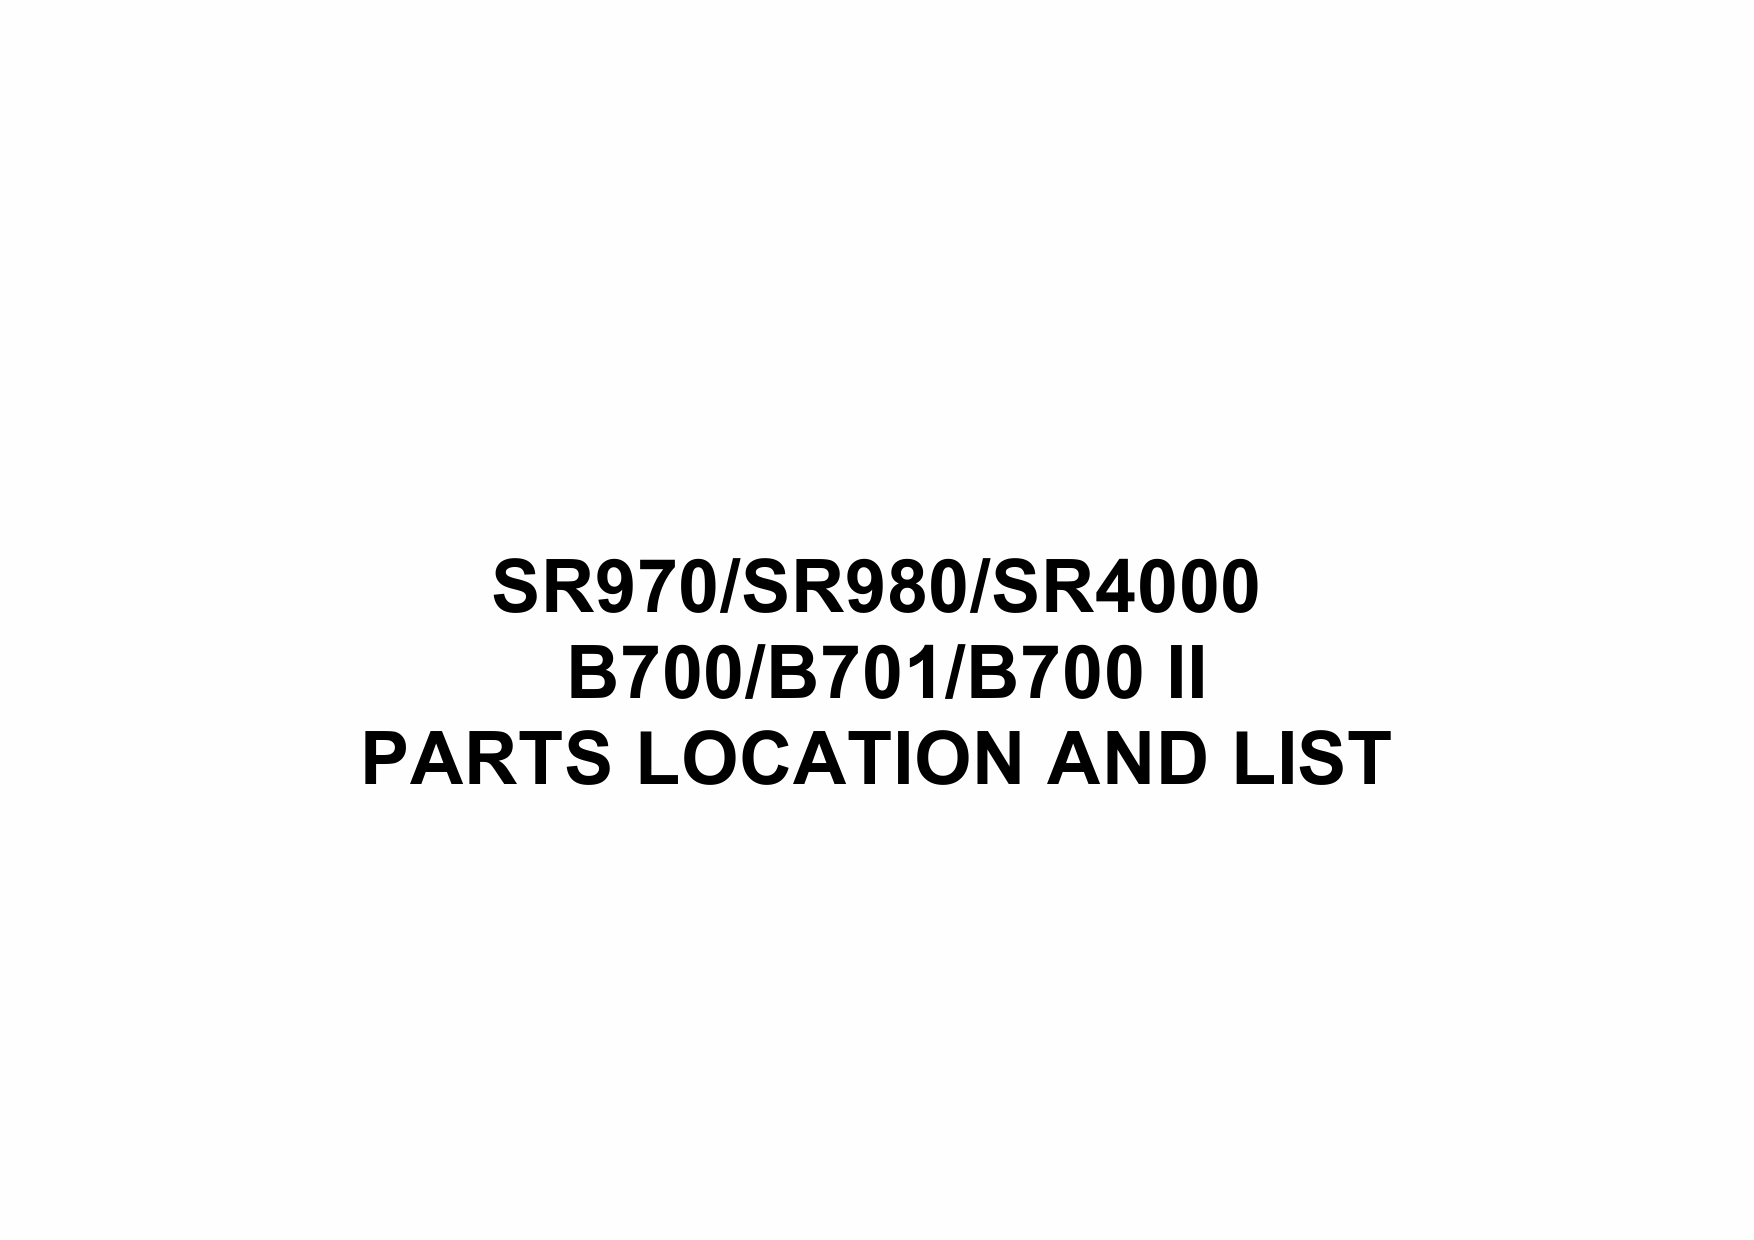 RICOH Options B700II B701 SR970-SR980-SR4000 Parts Catalog